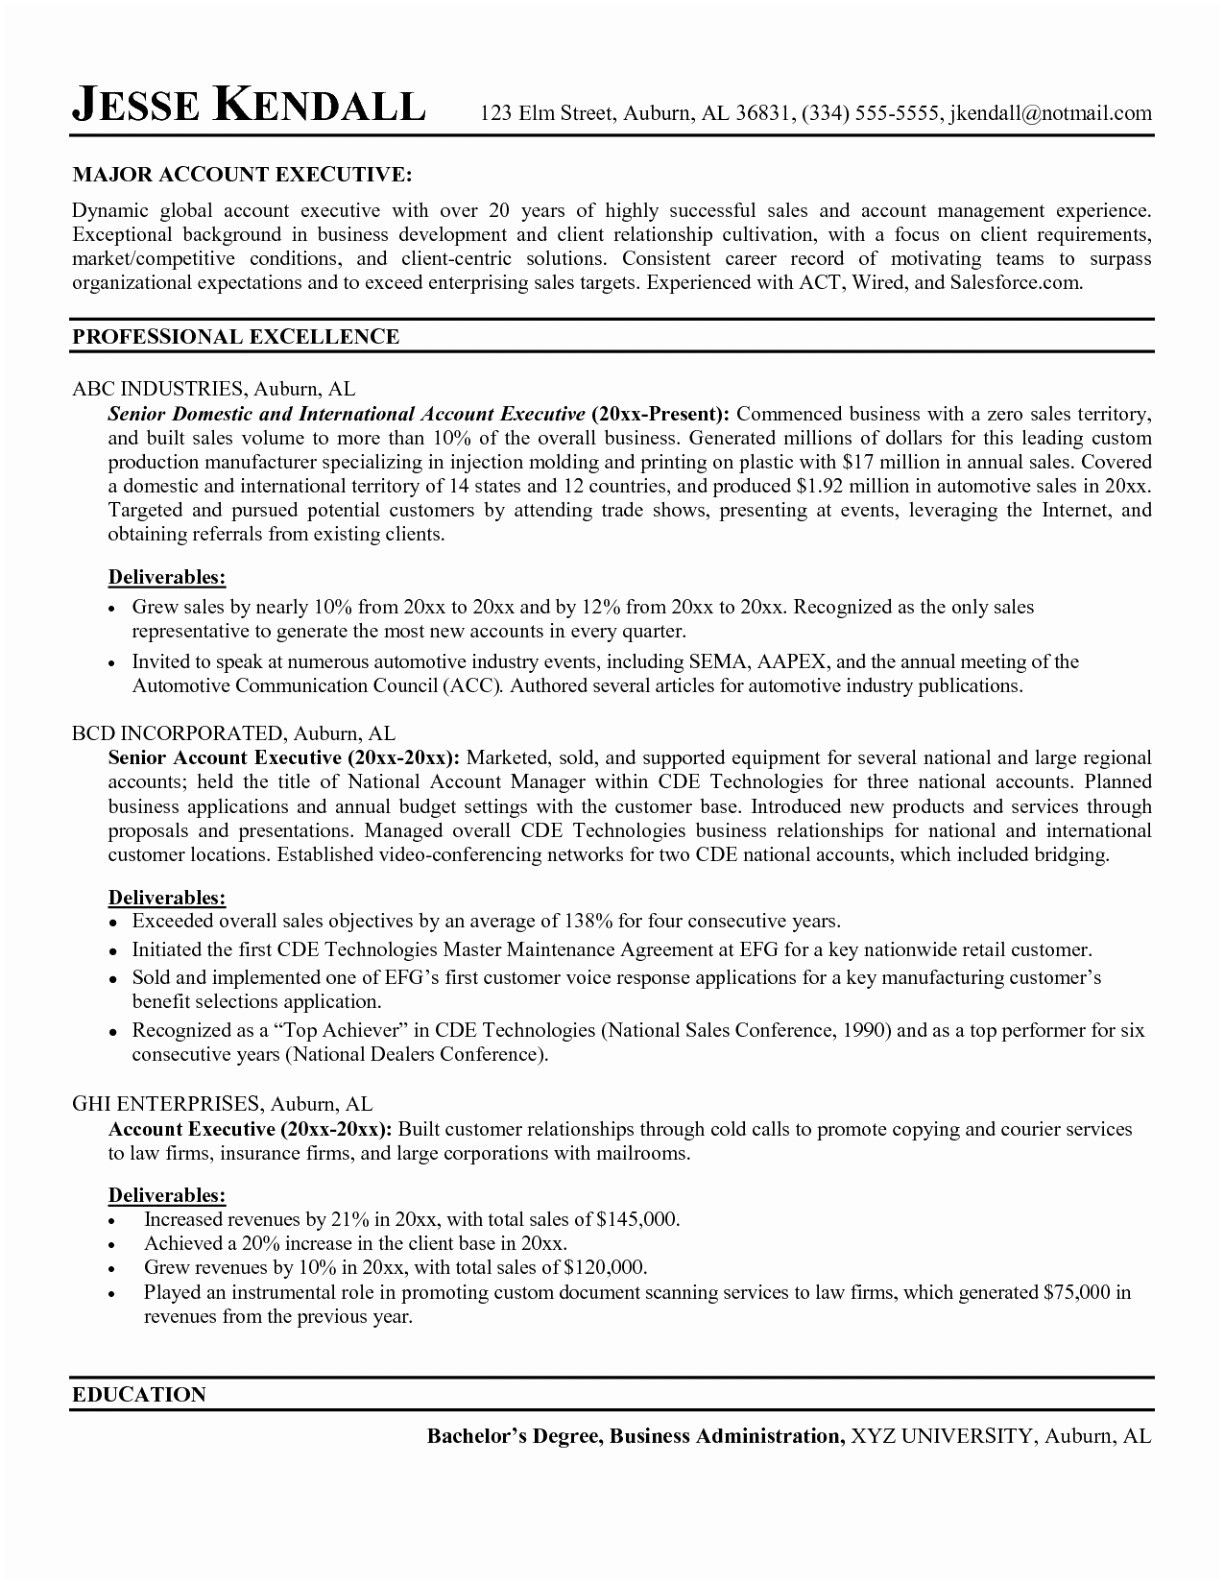 Top Business Publications Unique Best Business Resume